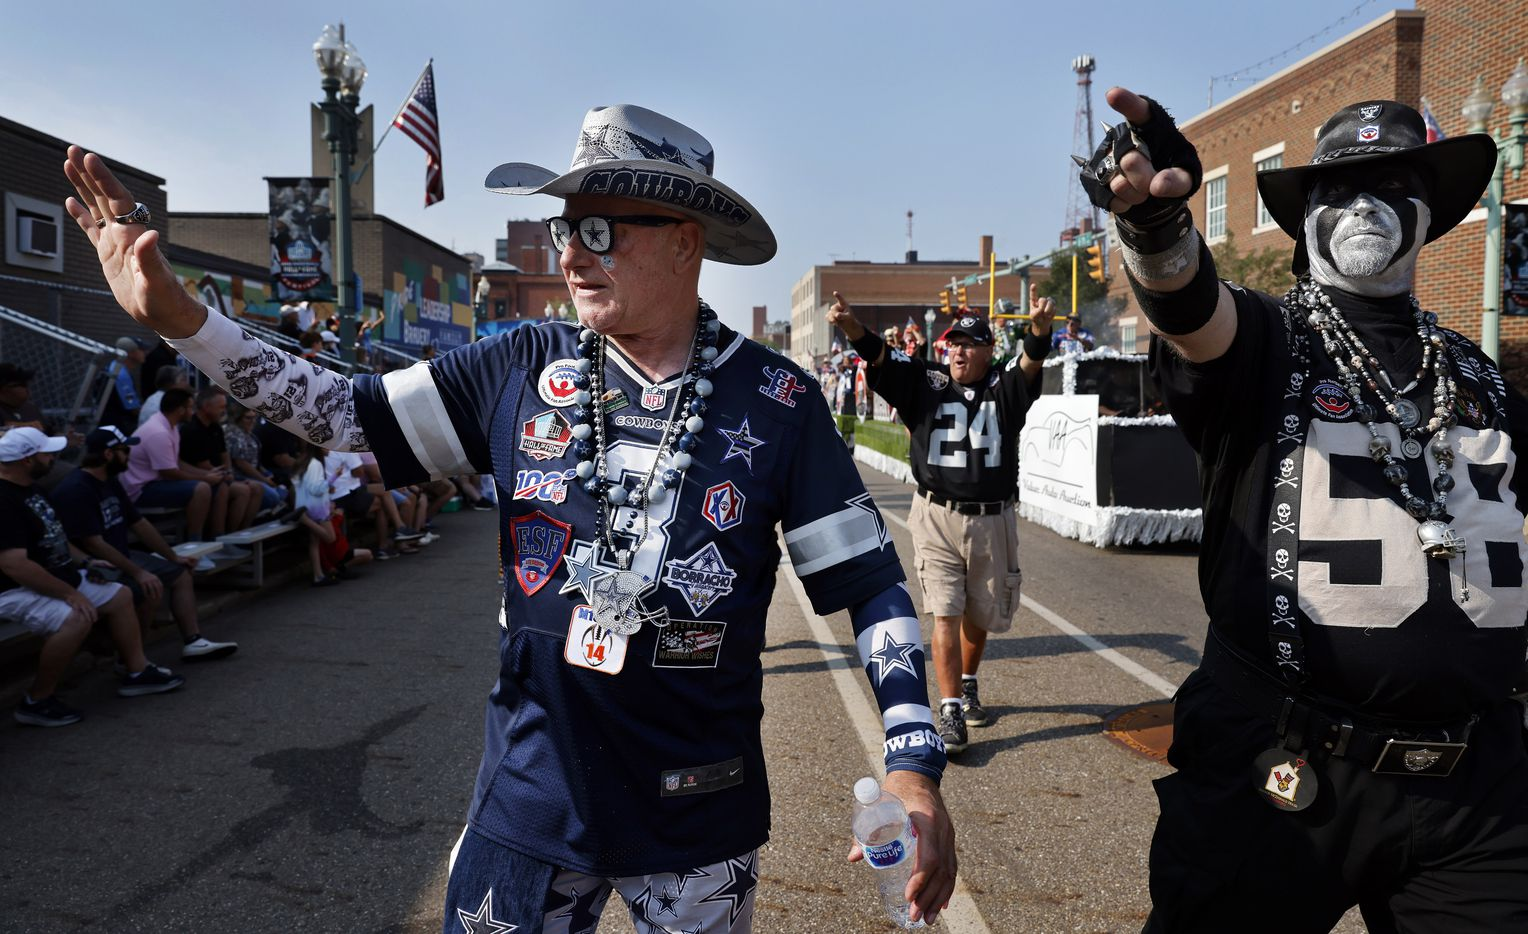 Dallas Cowboys fan Lloyd Wheeler of Fort Worth marches with other NFL mascots in the Canton Repository Grand Parade in downtown Canton, Ohio, Saturday, August 7, 2021. The Pro Football Hall of Fame parade honored newly elected and former members of the Hall, including newcomers and former Dallas Cowboys players Cliff Harris, Drew Pearson and head coach Jimmy Johnson. (Tom Fox/The Dallas Morning News)